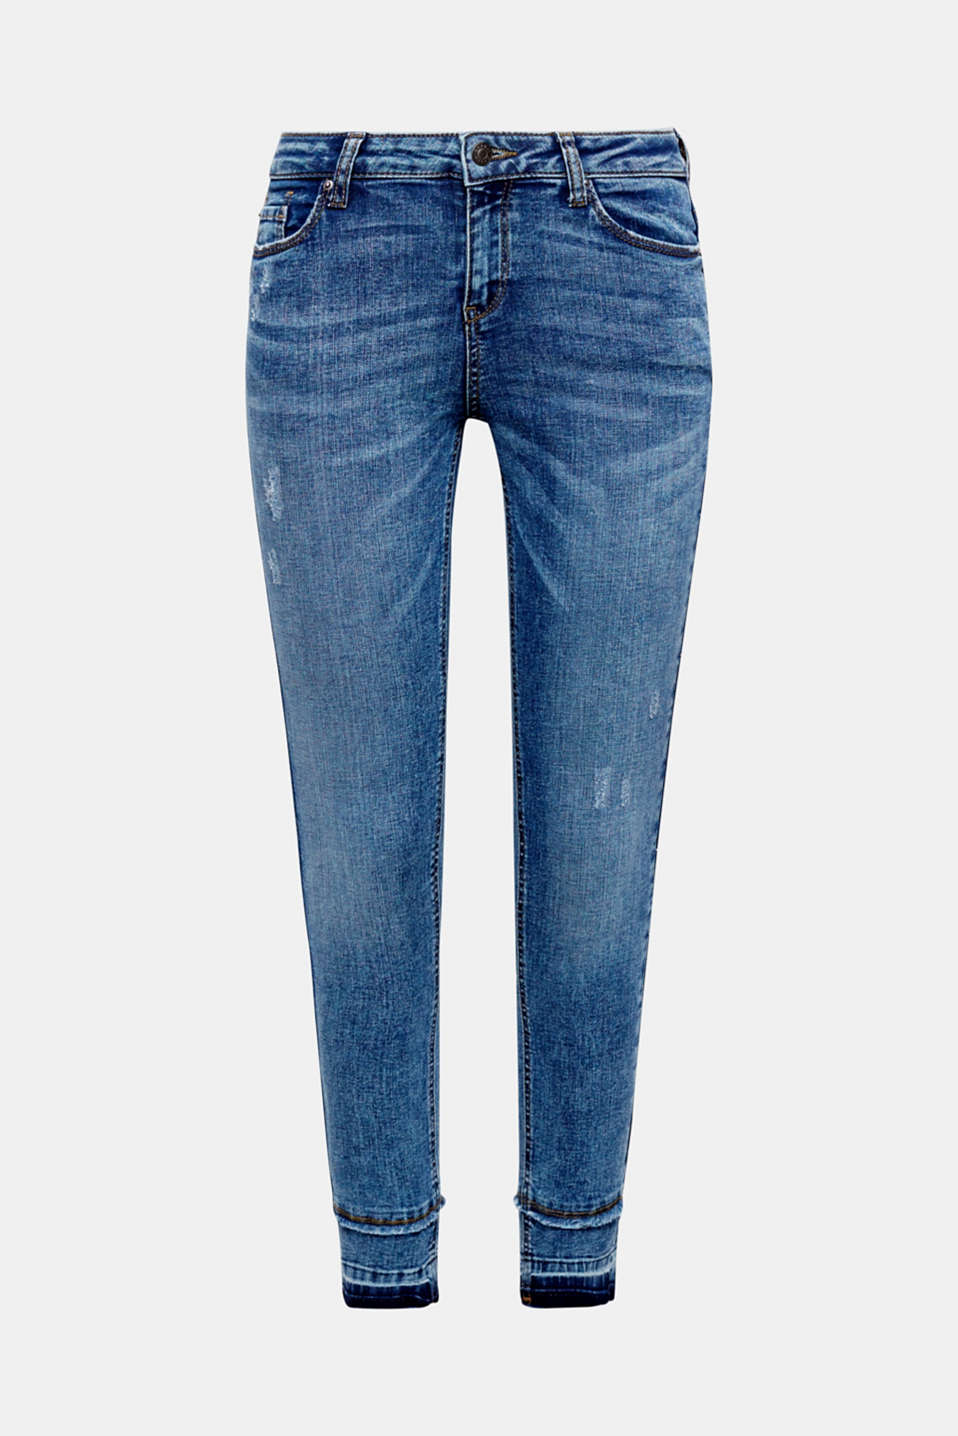 Vintage effects, a cool dye and leg hems in a trendy elongated look make these jeans a must-have piece!